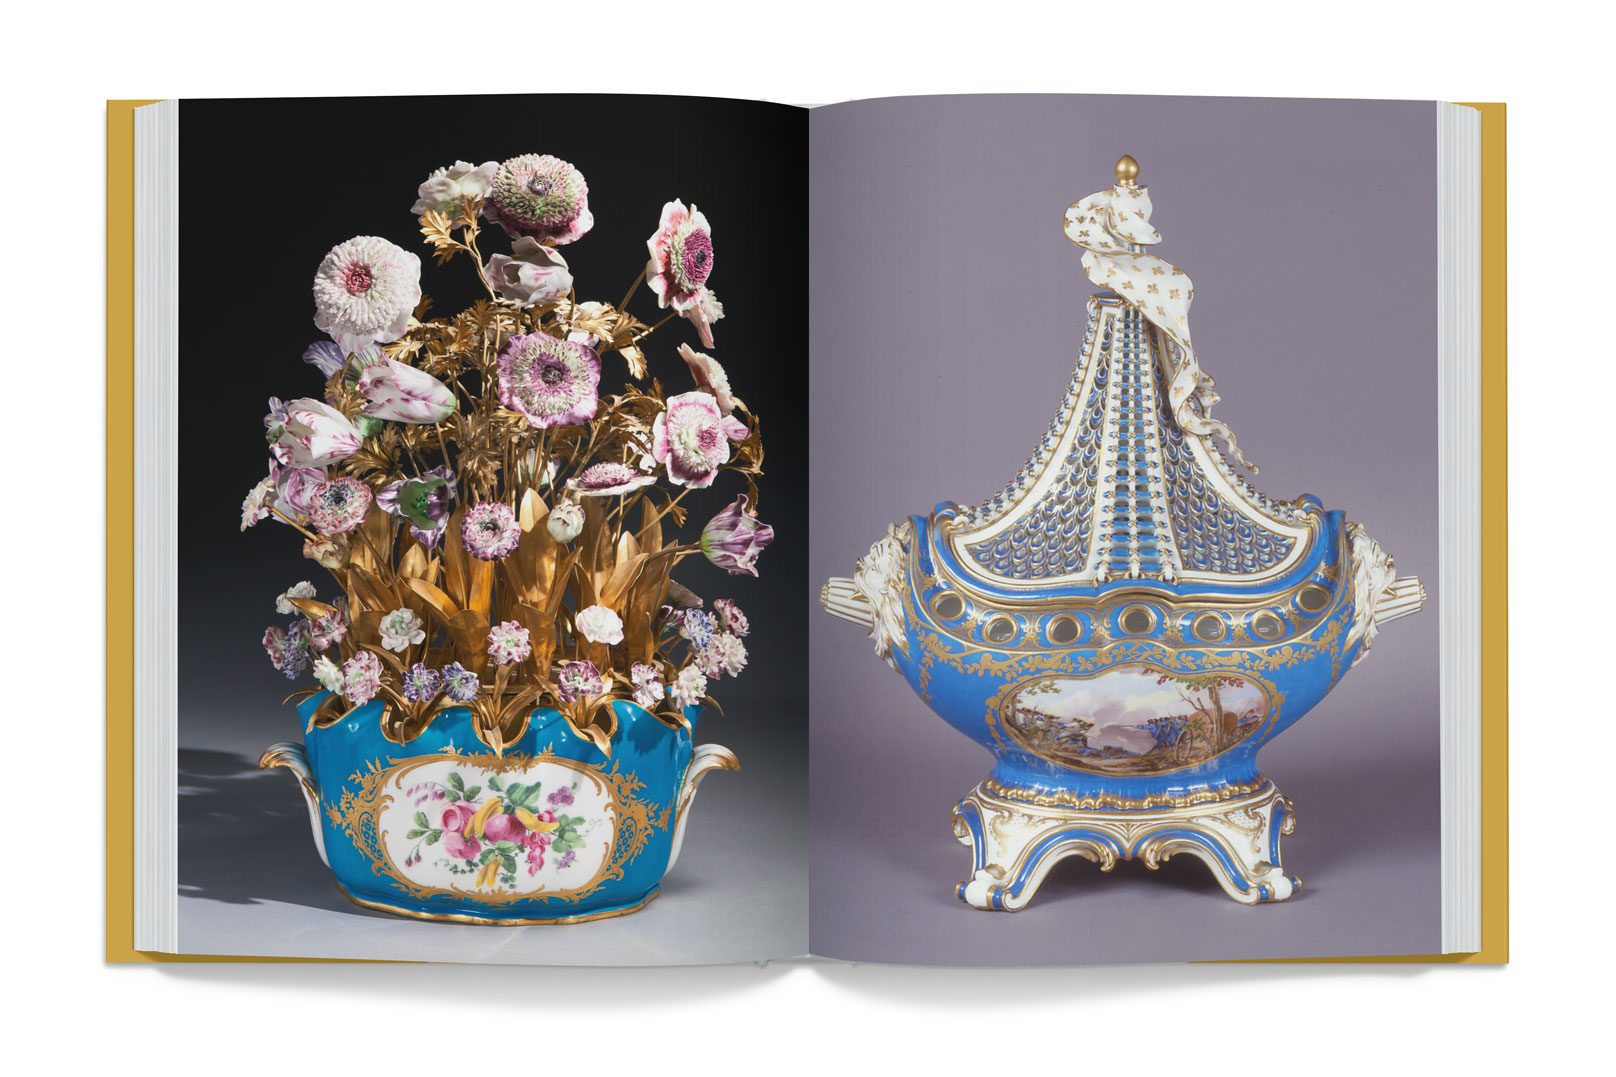 Vincennes and Sevres Porcelain in the Collections of the J. Paul Getty Museum